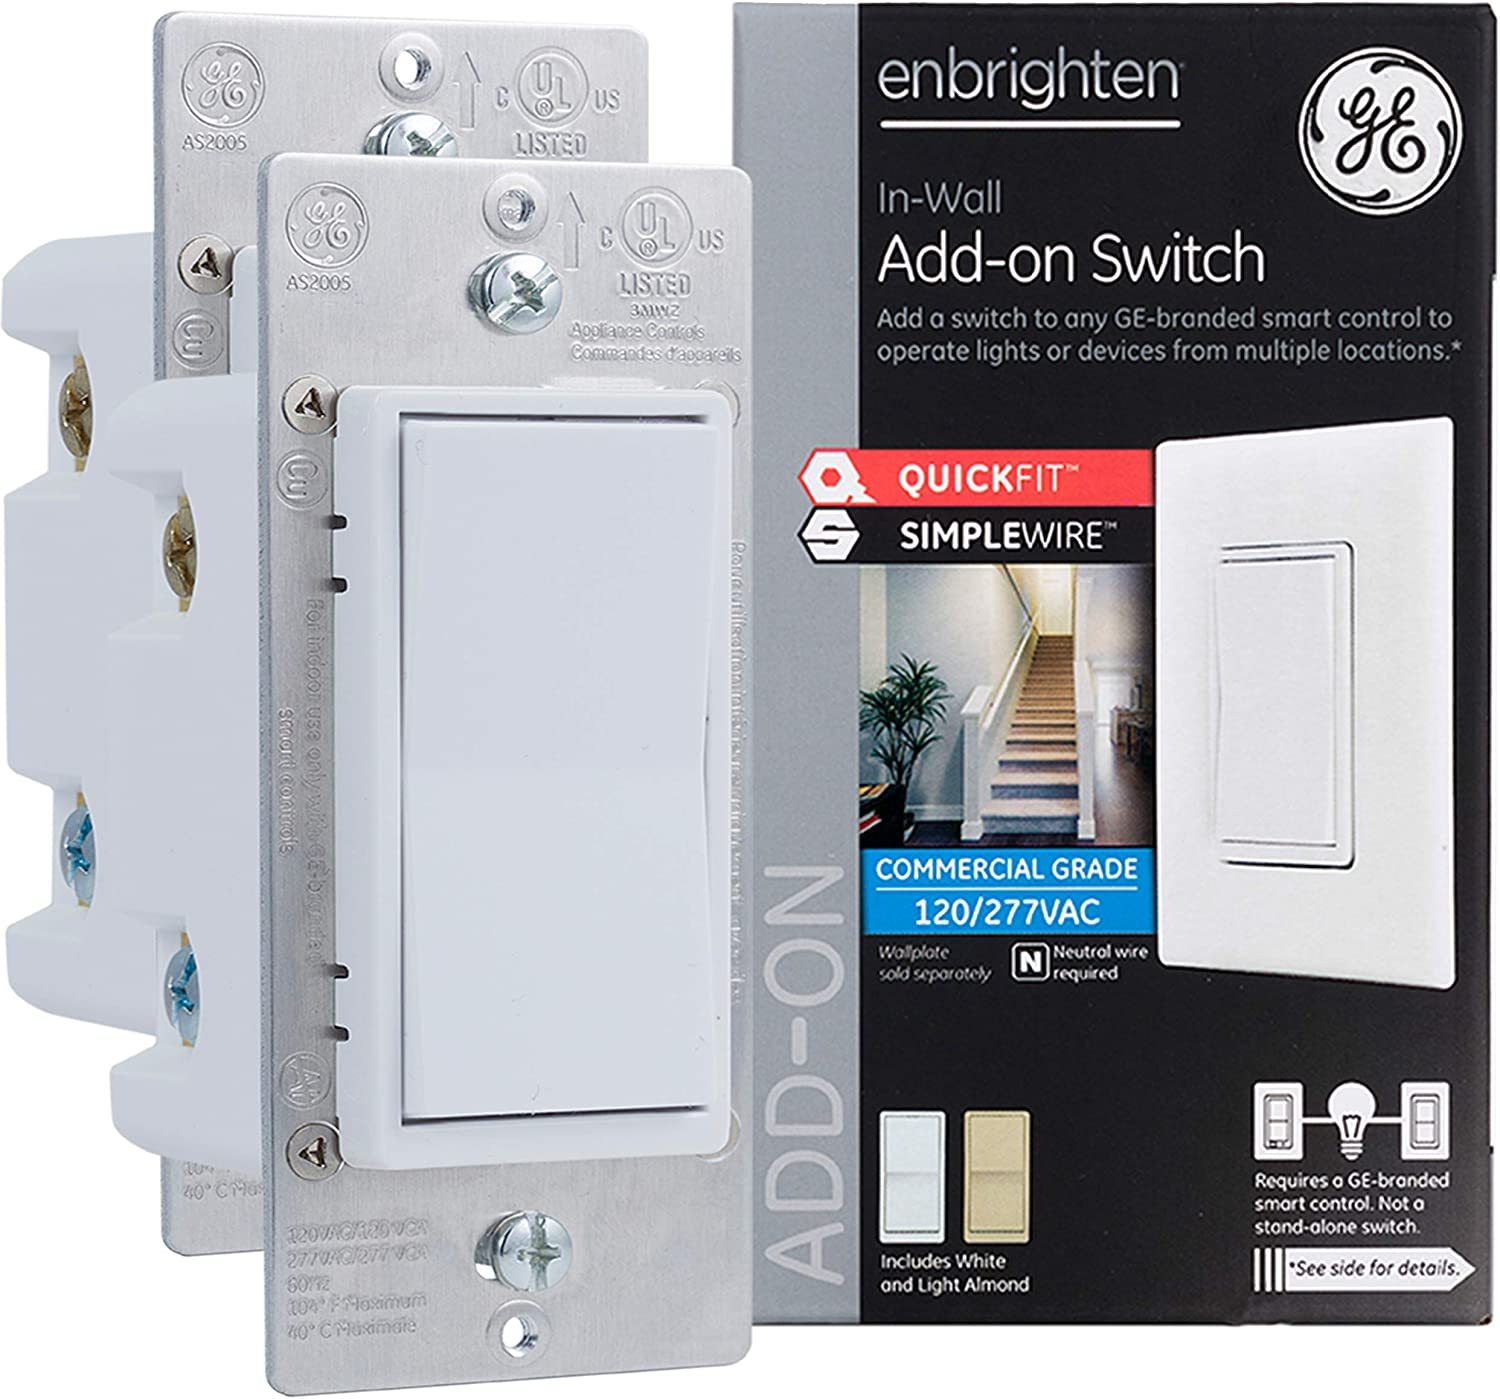 GE Enbrighten Add-On Switch 2-pack with QuickFit and SimpleWire, GE Z-Wave/GE Zigbee Smart Lighting Controls, Works with Alexa, Google Assistant, NOT A STANDALONE SWITCH, White & Light Almond, 47896